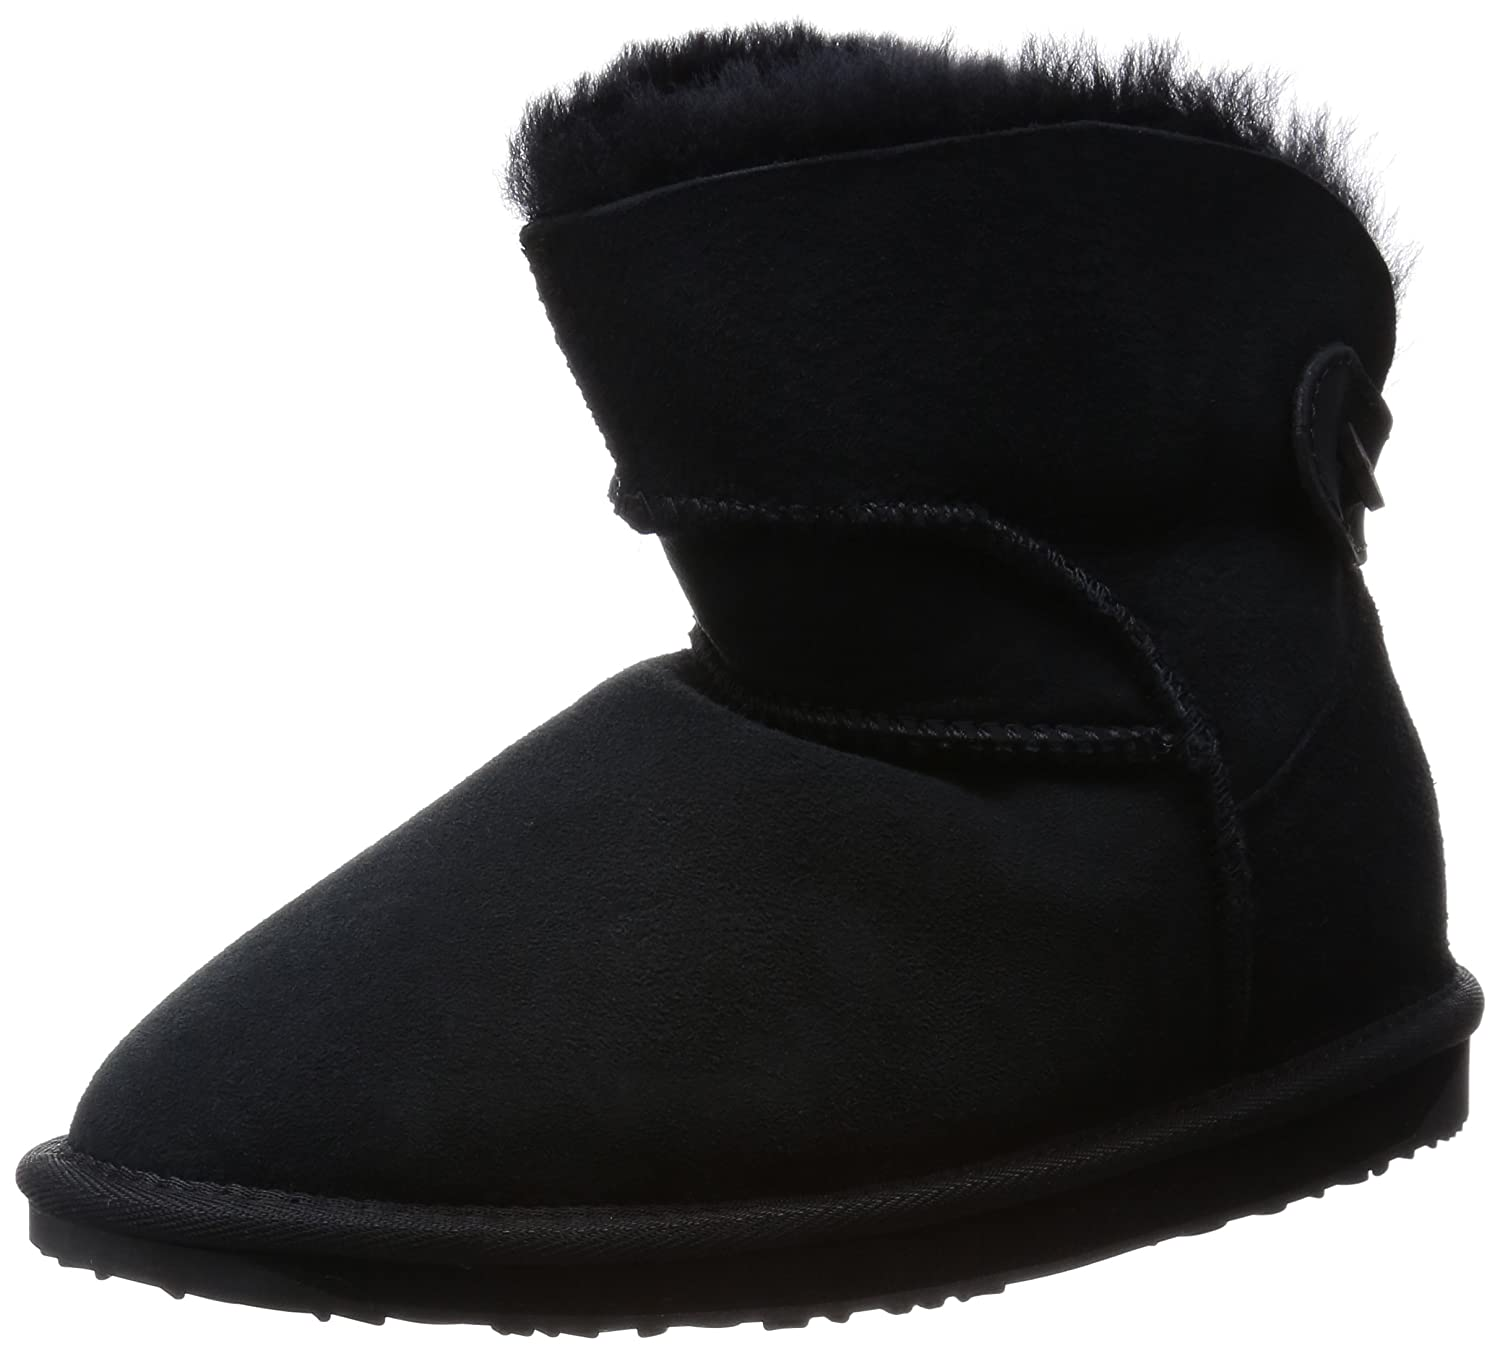 Buy Emu Australia Women S Alba Mini Snow Boot Black 8 M Us At Amazon In